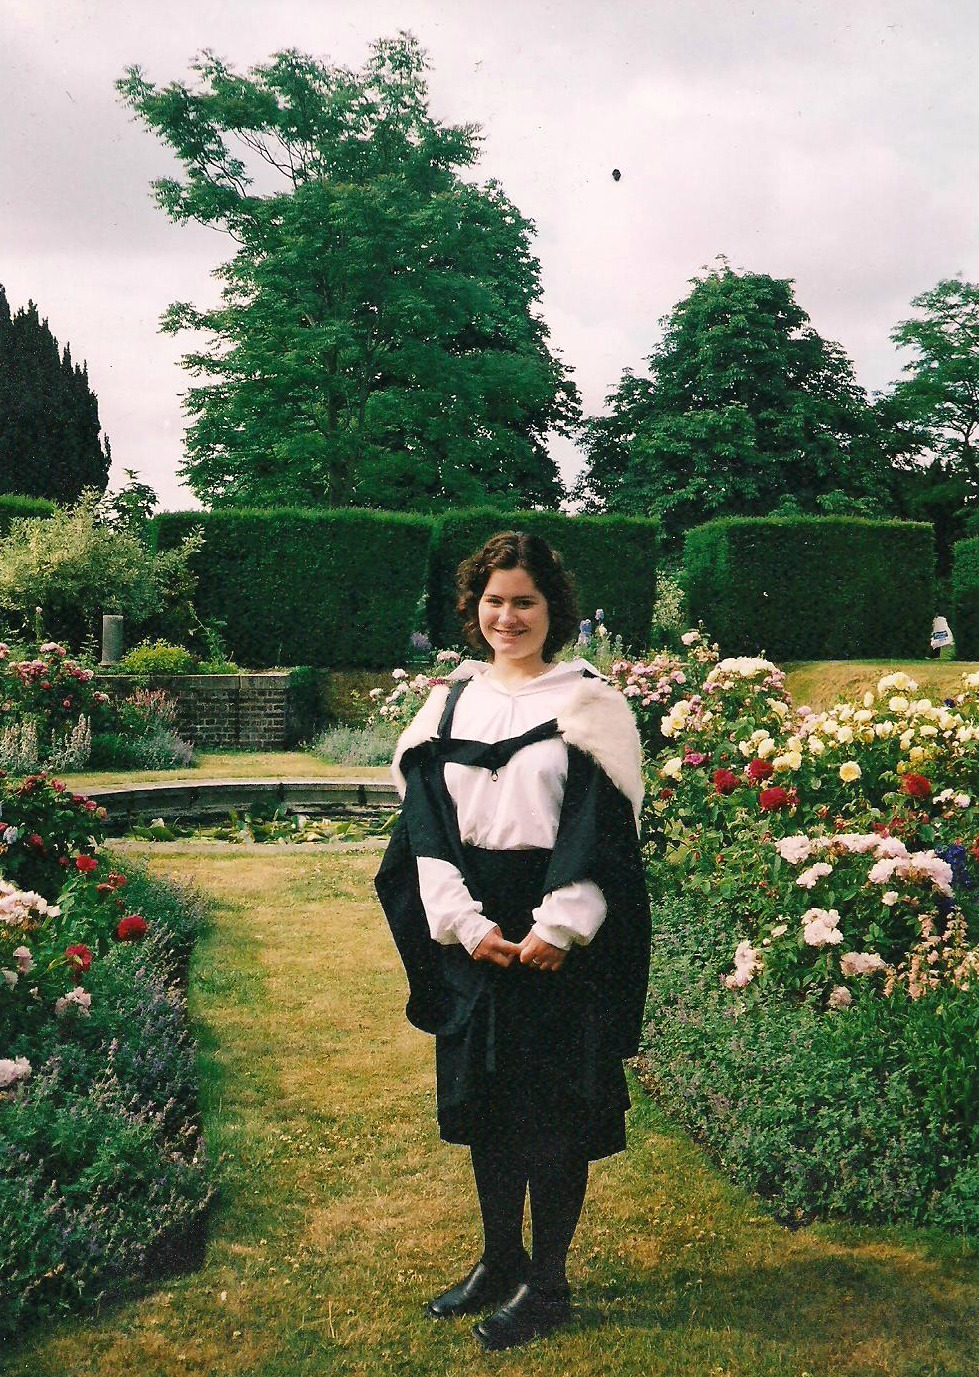 Lucy Parsons BA Graduation Newnham College, Cambridge